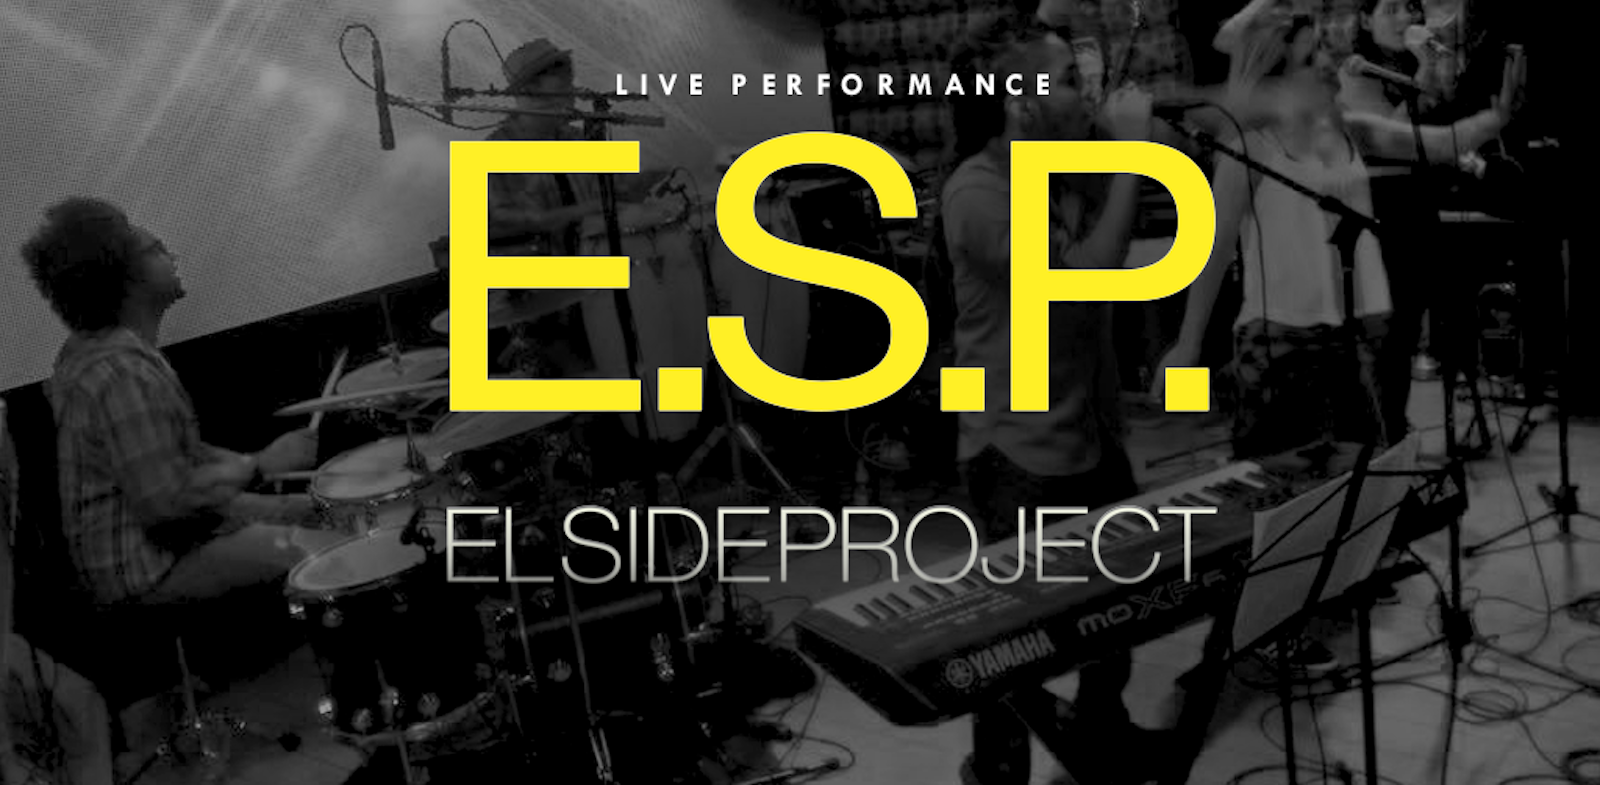 EL SIDE PROJECT EP RELEASE PARTY